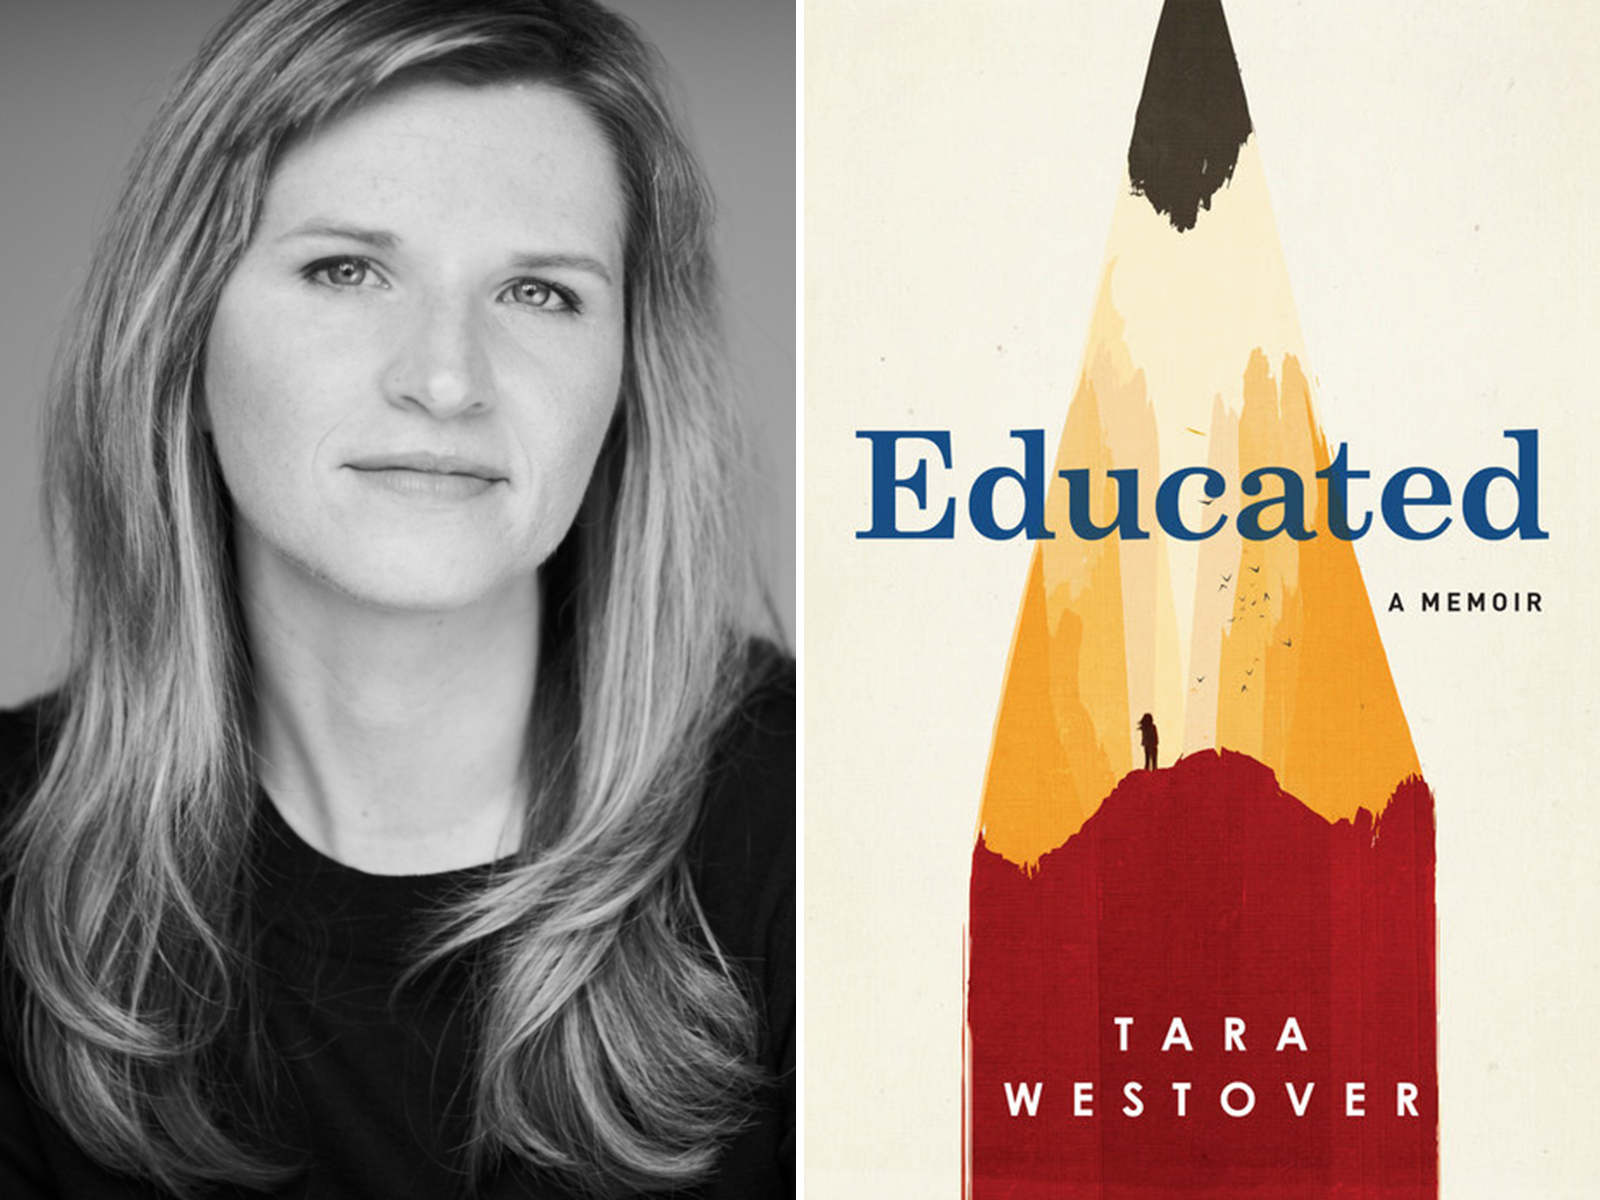 Best books of 2018: Educated by Tara Westover